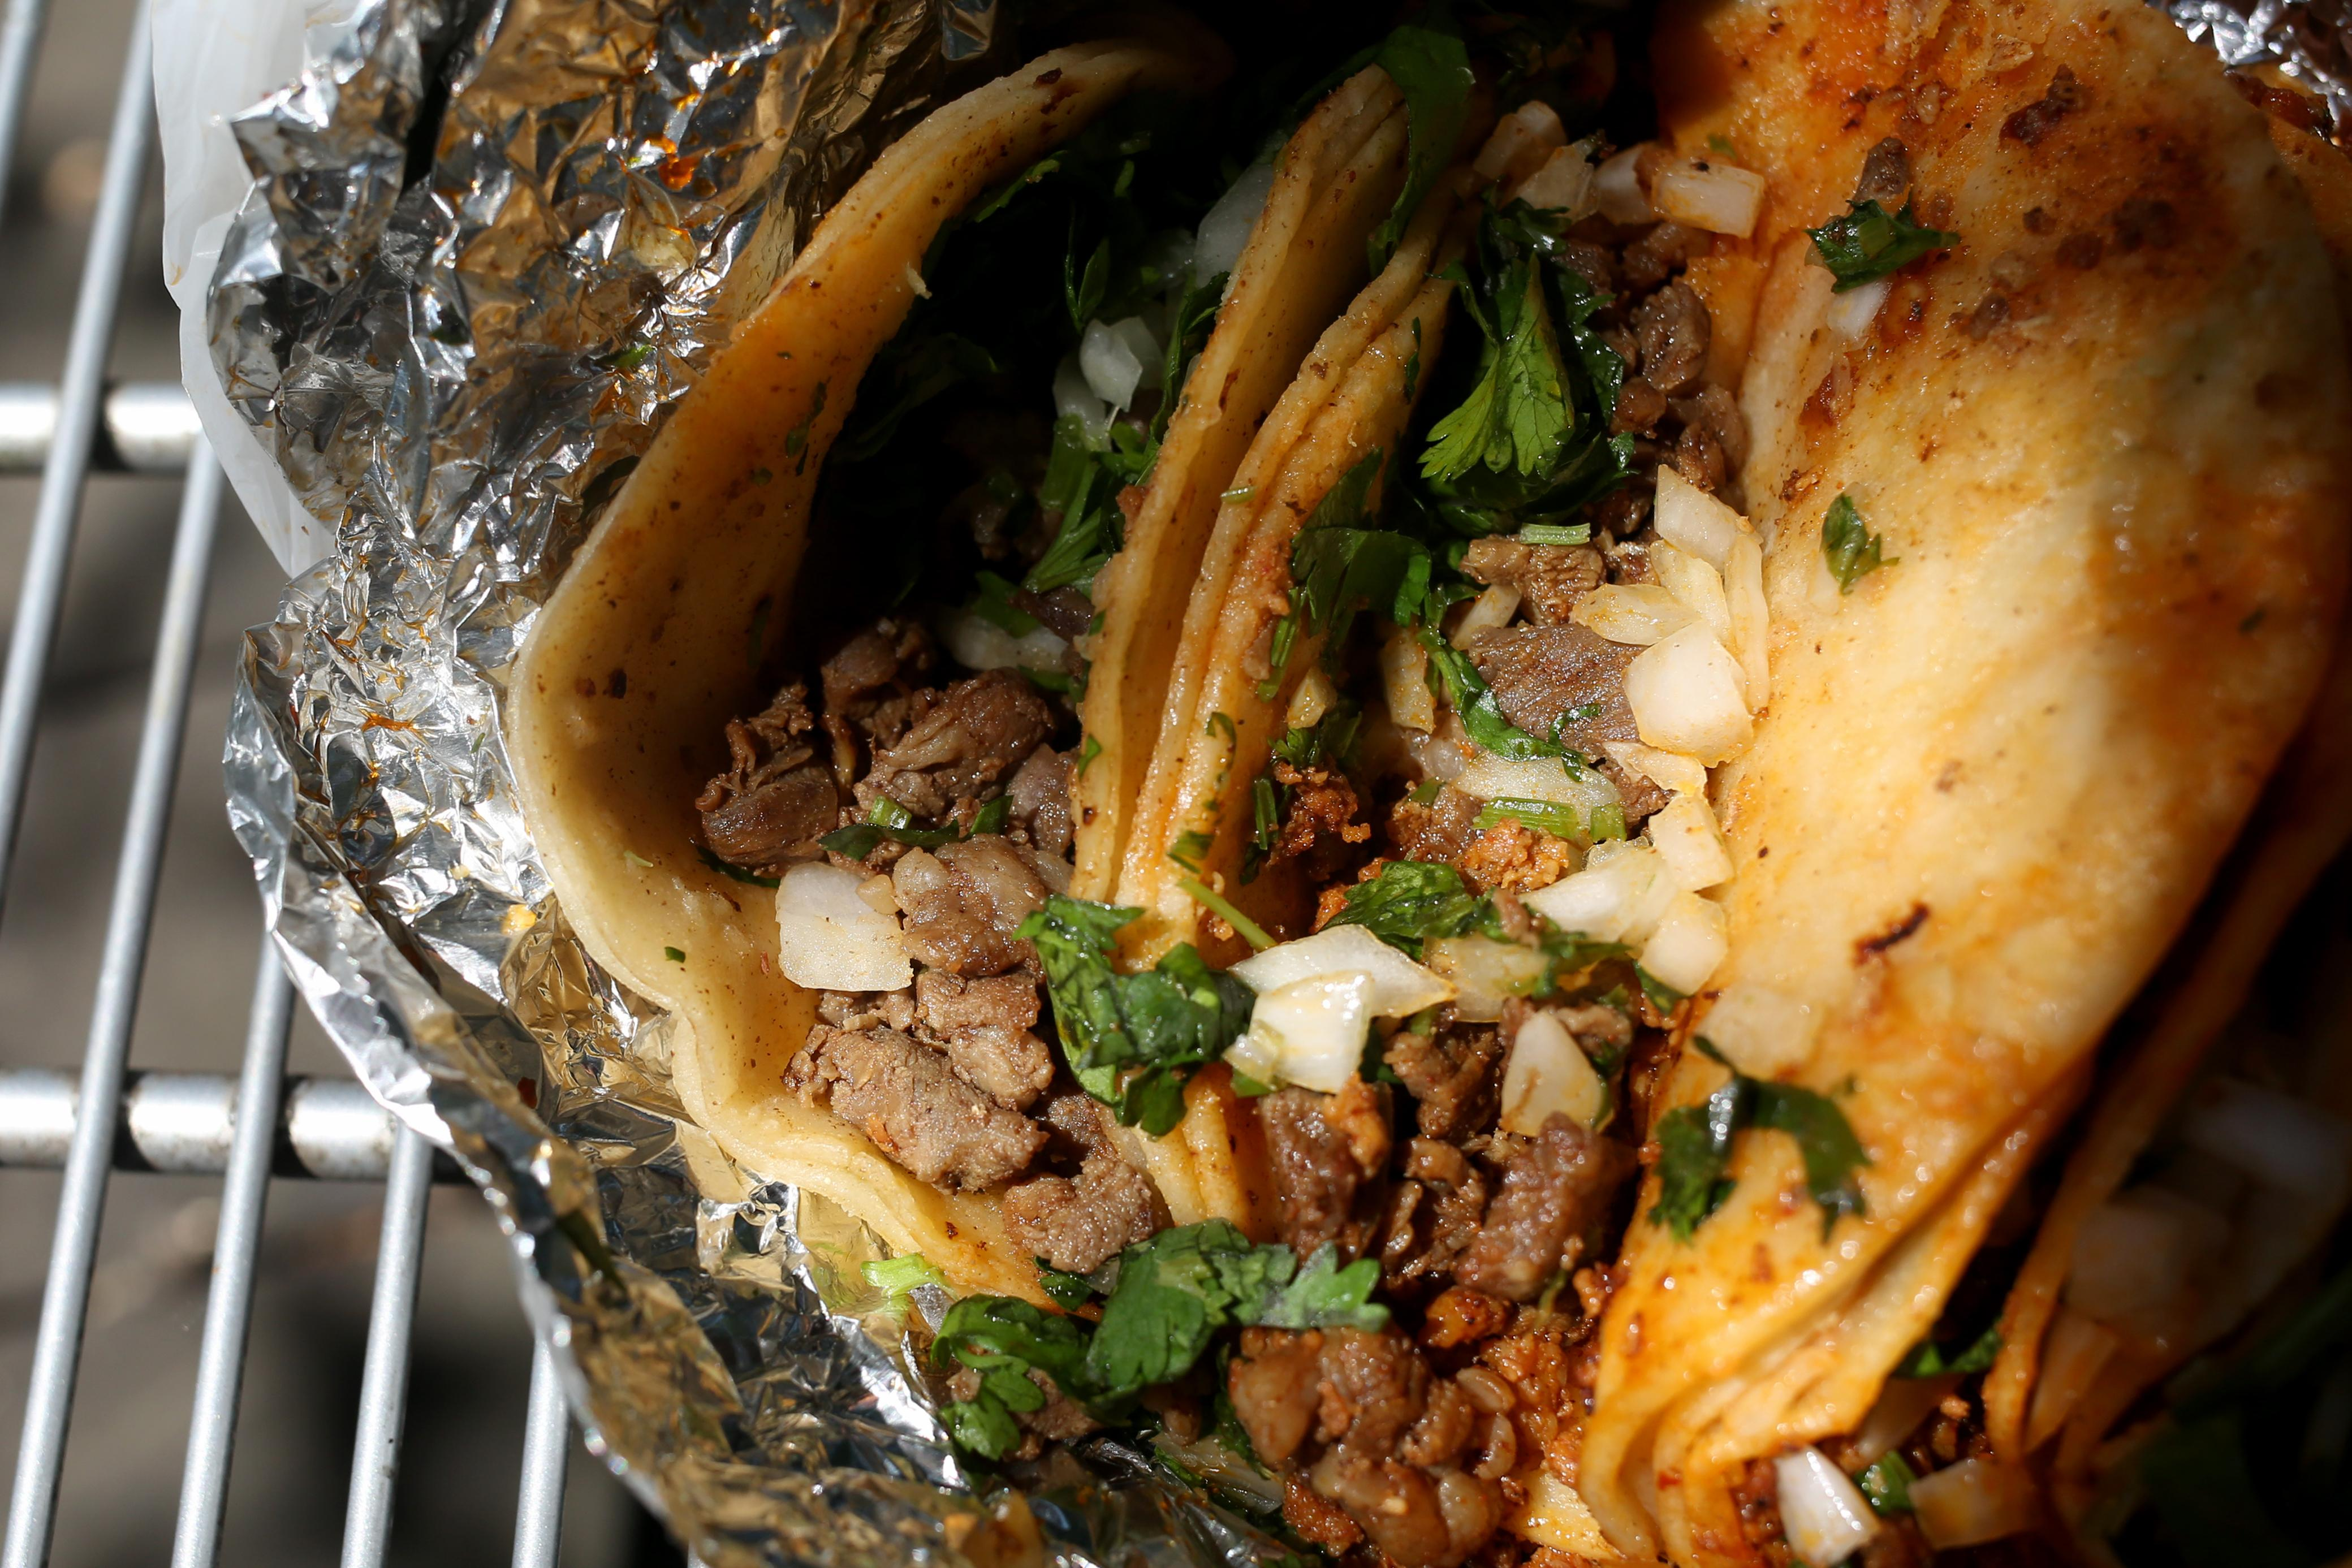 Asada is typically a thin meat and a lot of East Coast tacos try to compensate with large pieces, but Tacos el Chilango keeps it smaller and more edible. This means all the salsas have a chance to seep in and take full effect. (Amanda Andrade-Rhoades/DC Refined)